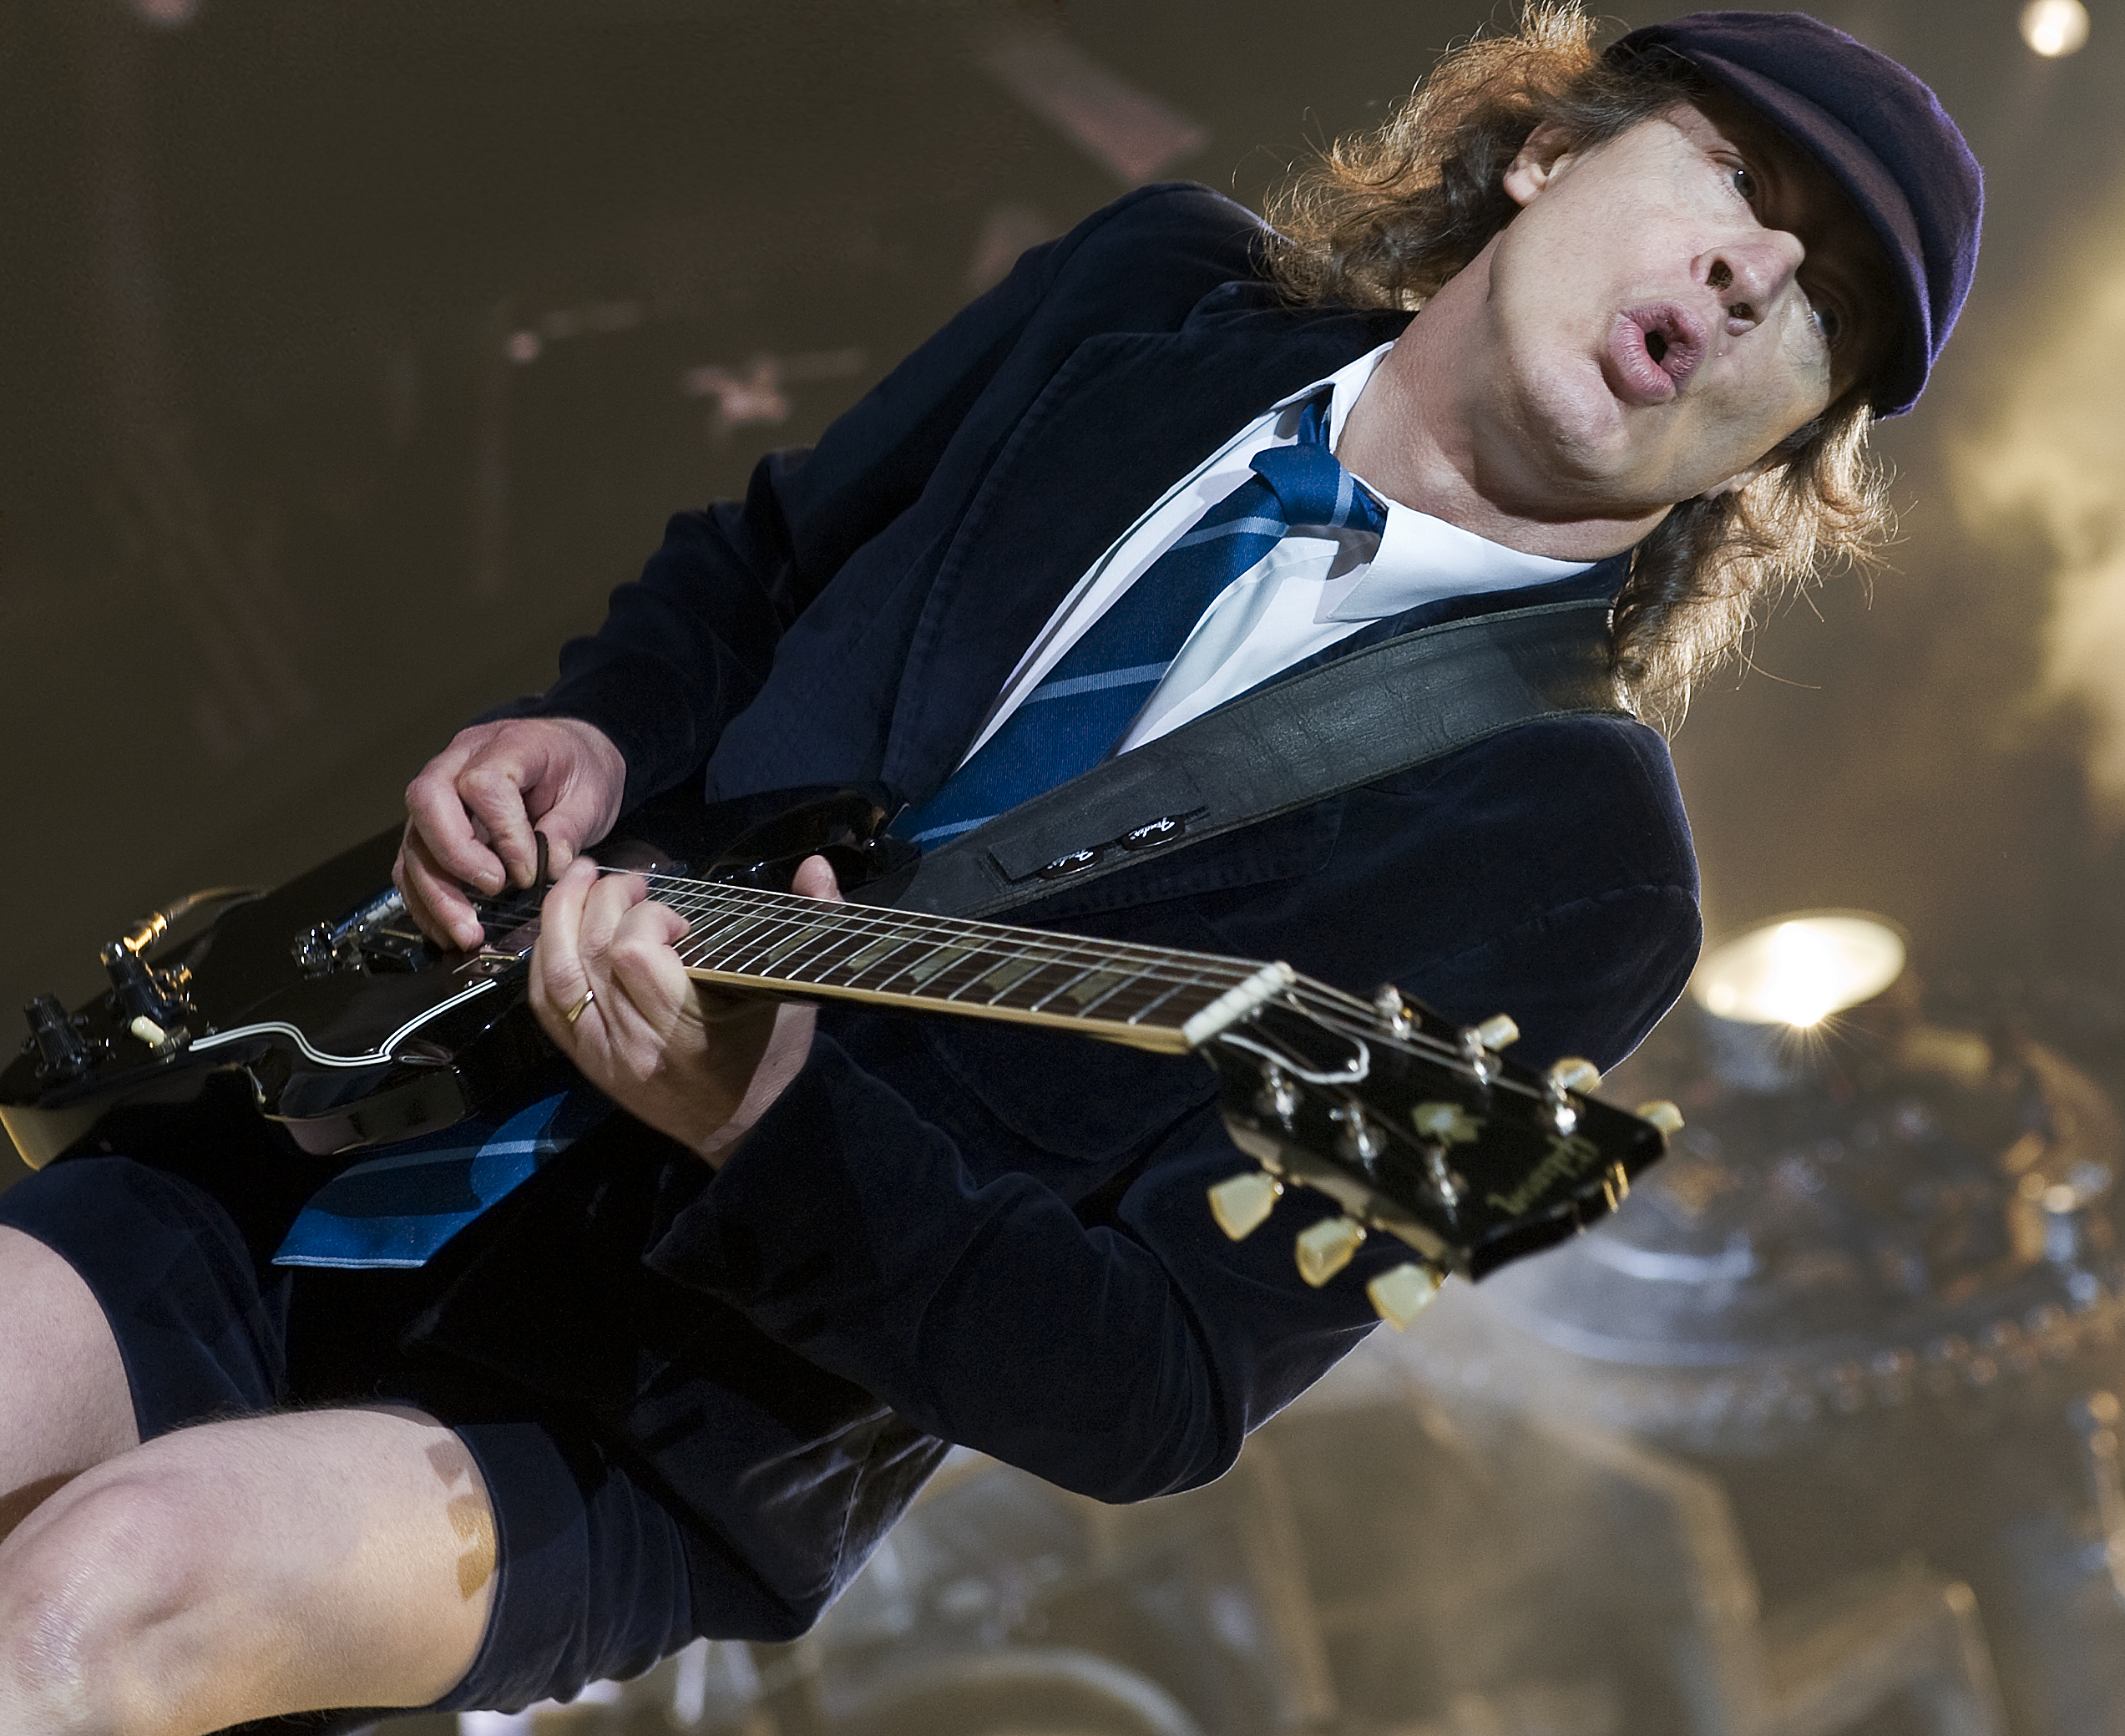 LONDON, UNITED KINGDOM - MAY 16: Angus Young of AC/DC performing live on stage at the O2 Arena, April 16, 2009. (Photo by Rob